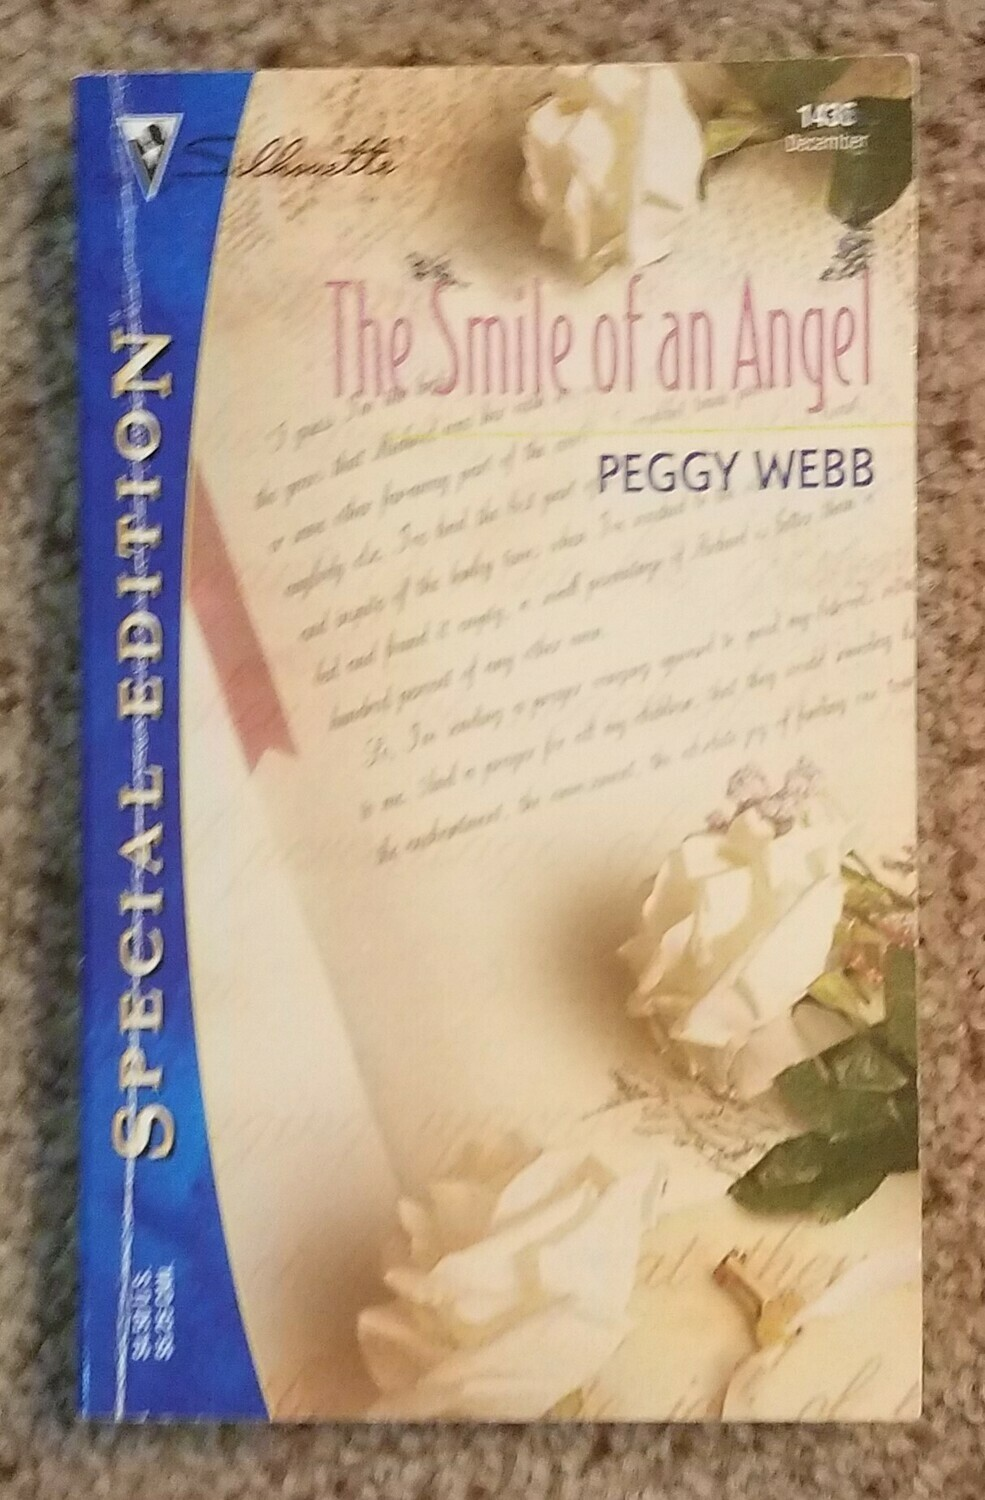 The Smile of an angel by Peggy Webb